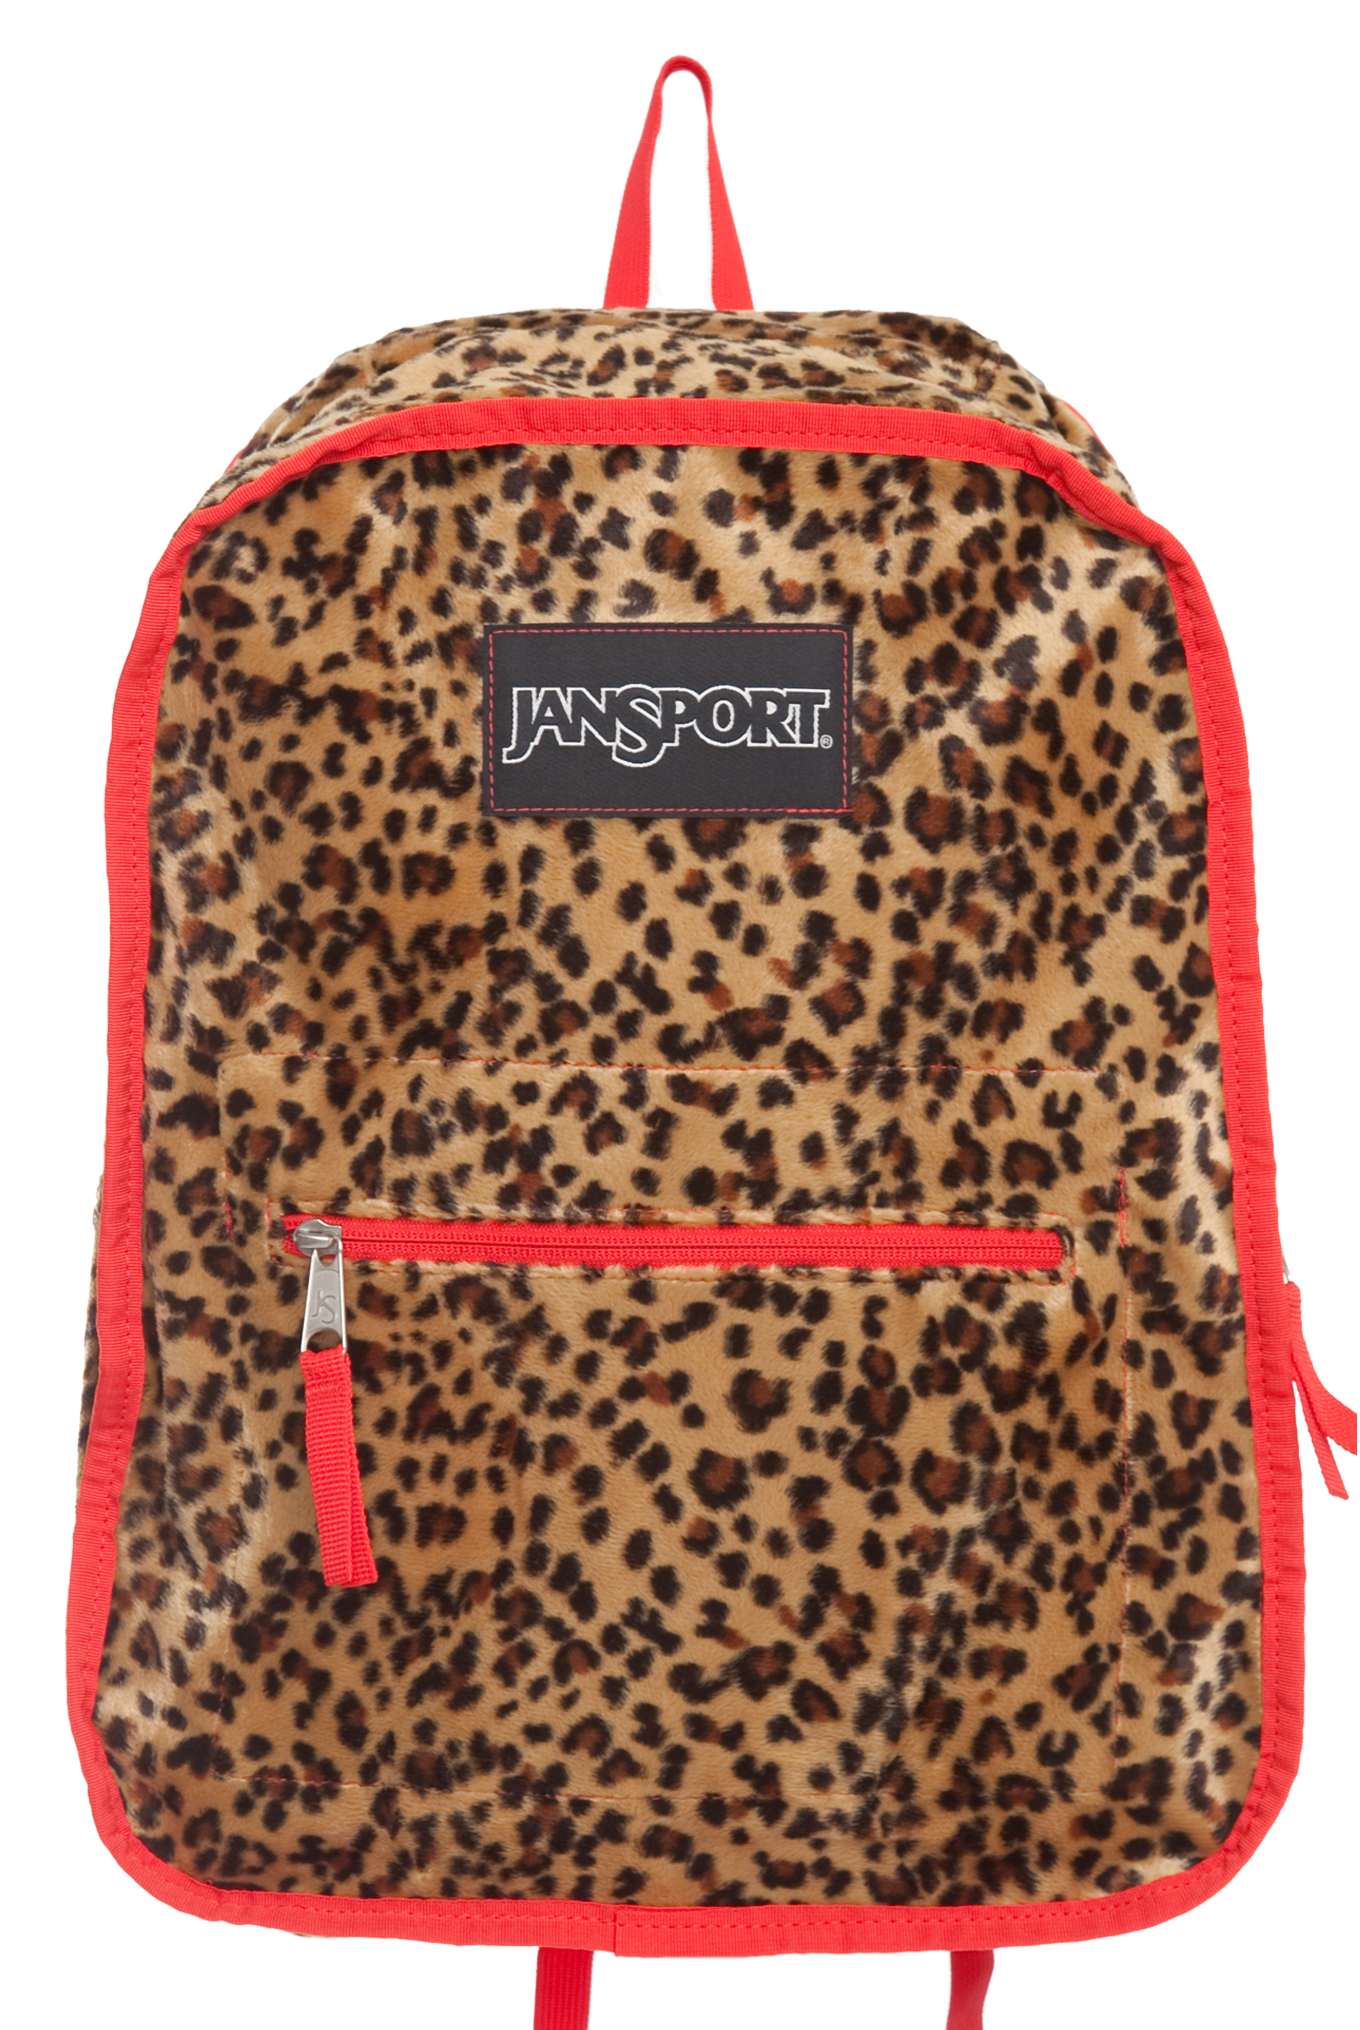 Polka Dot Jansport Backpack aF92kso1